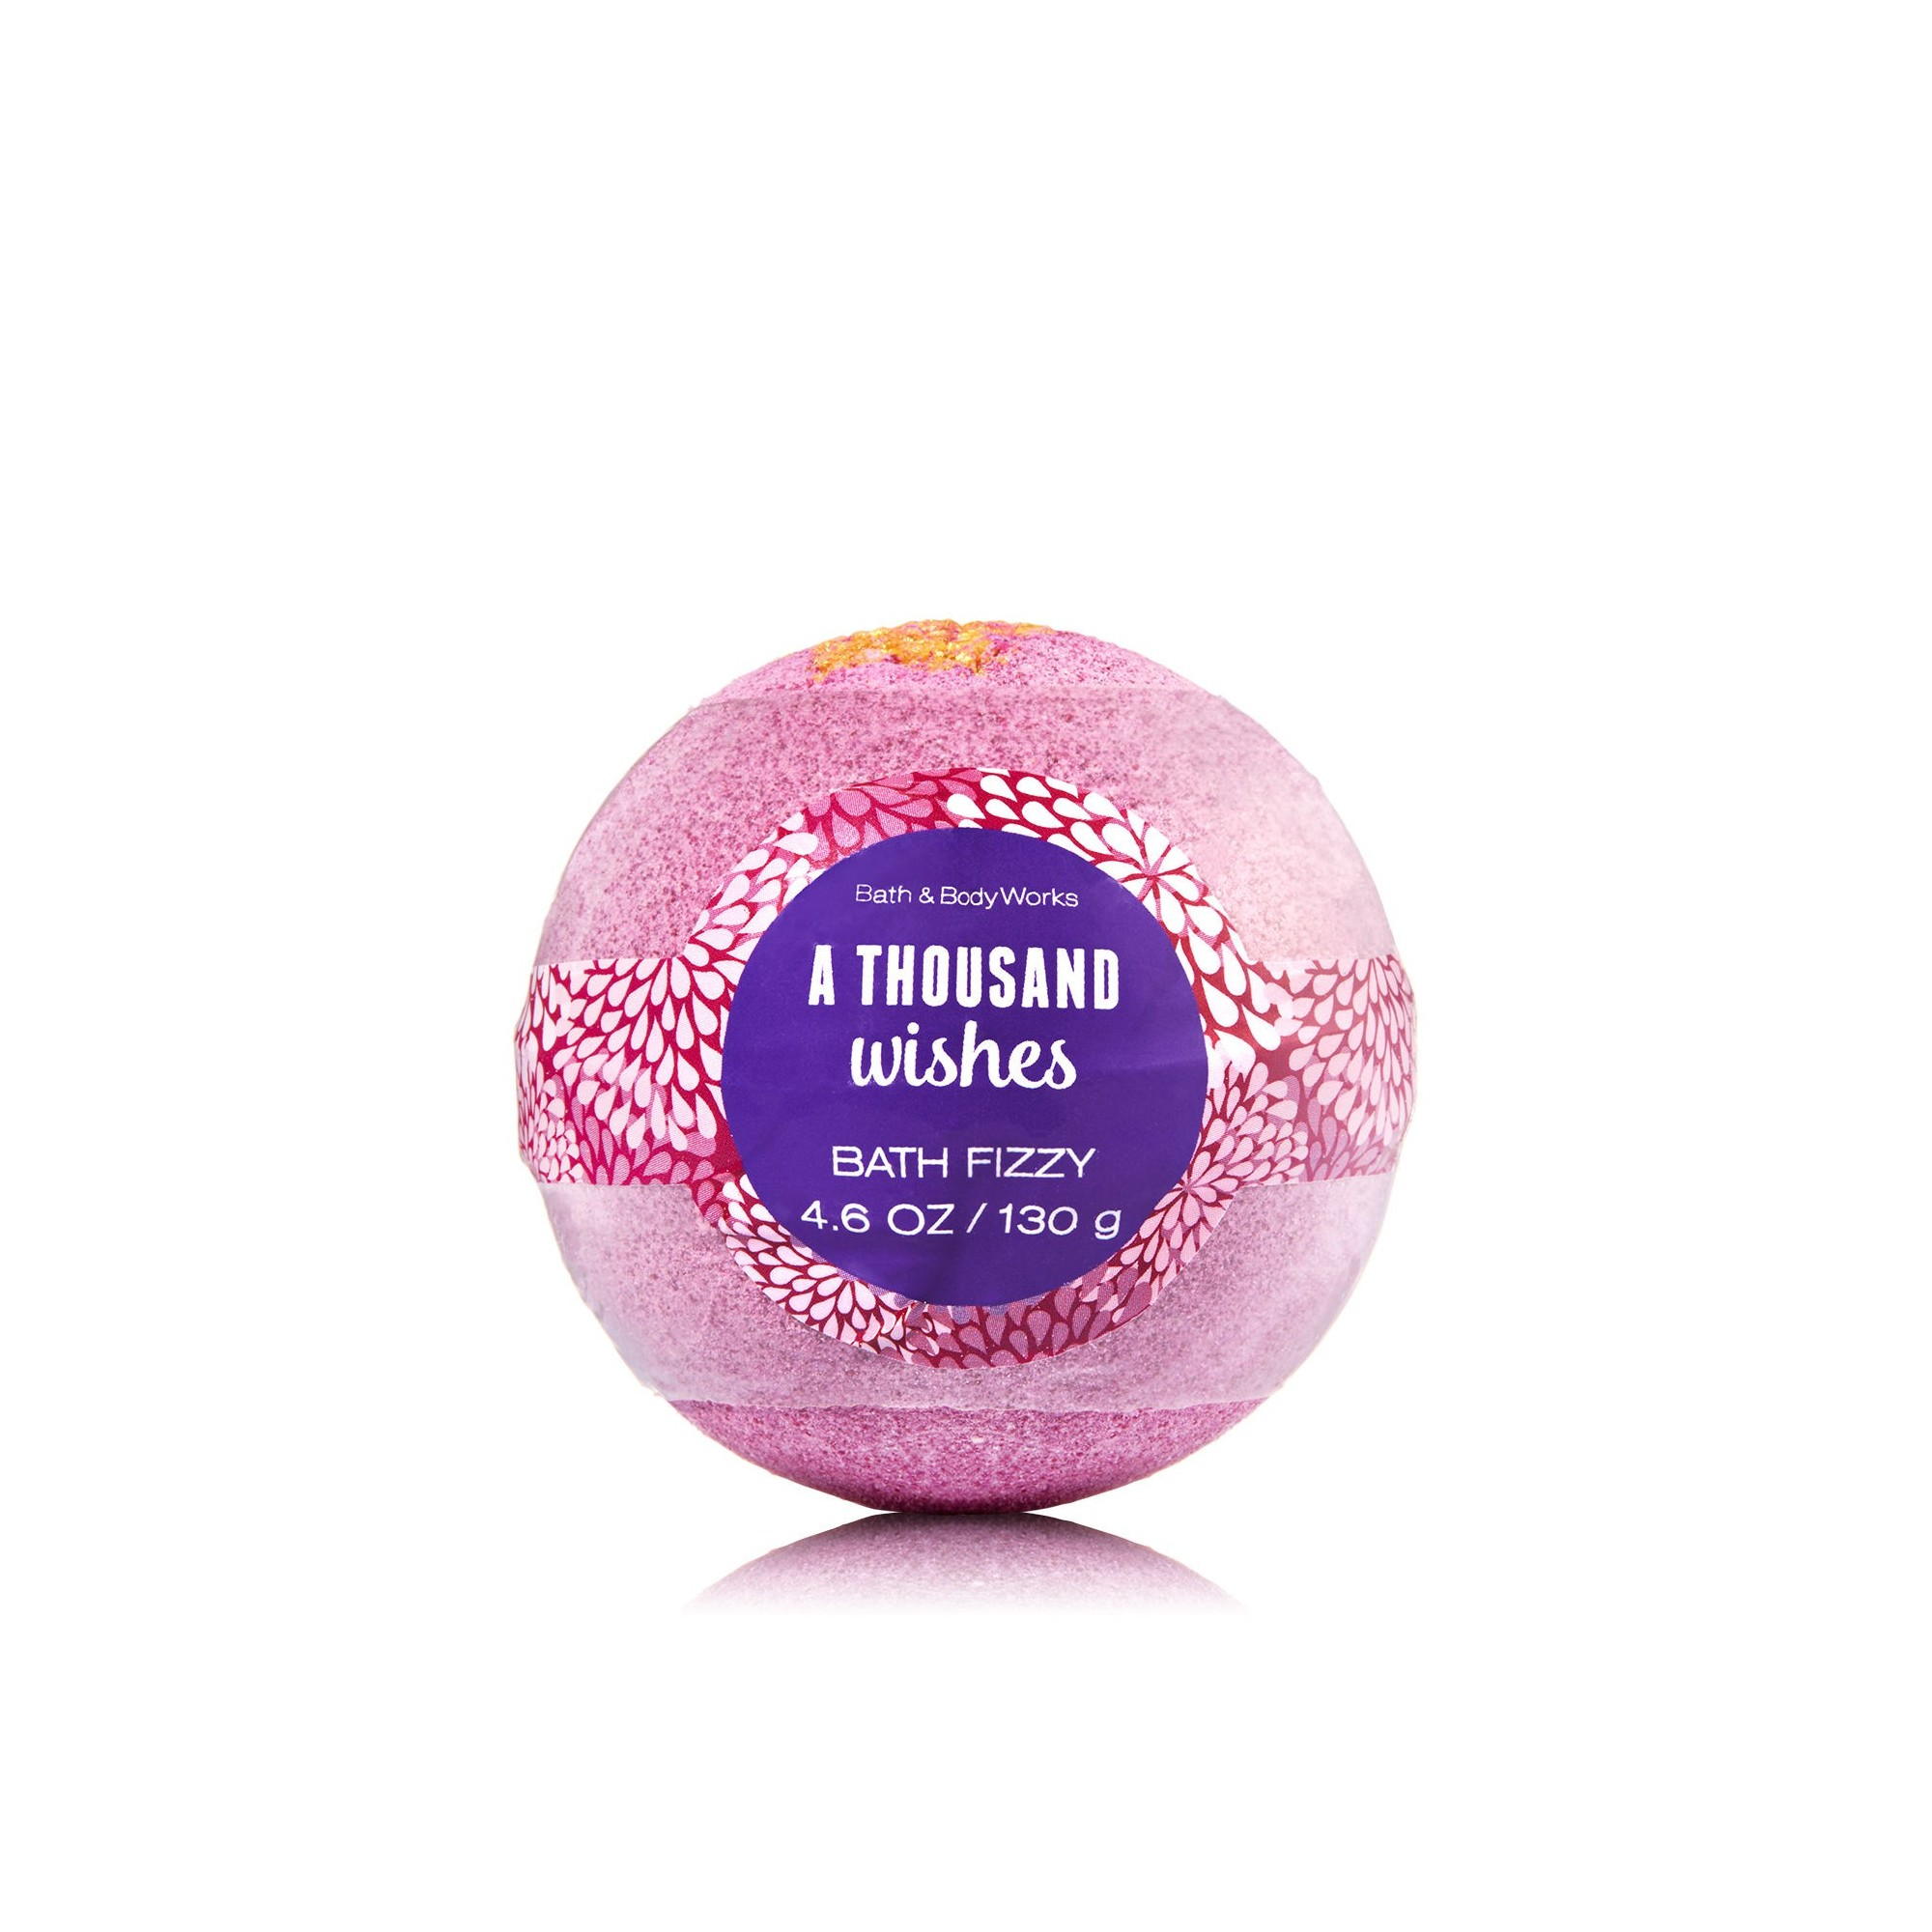 Bath & Body Works A Thousand Wishes Bath Fizzy